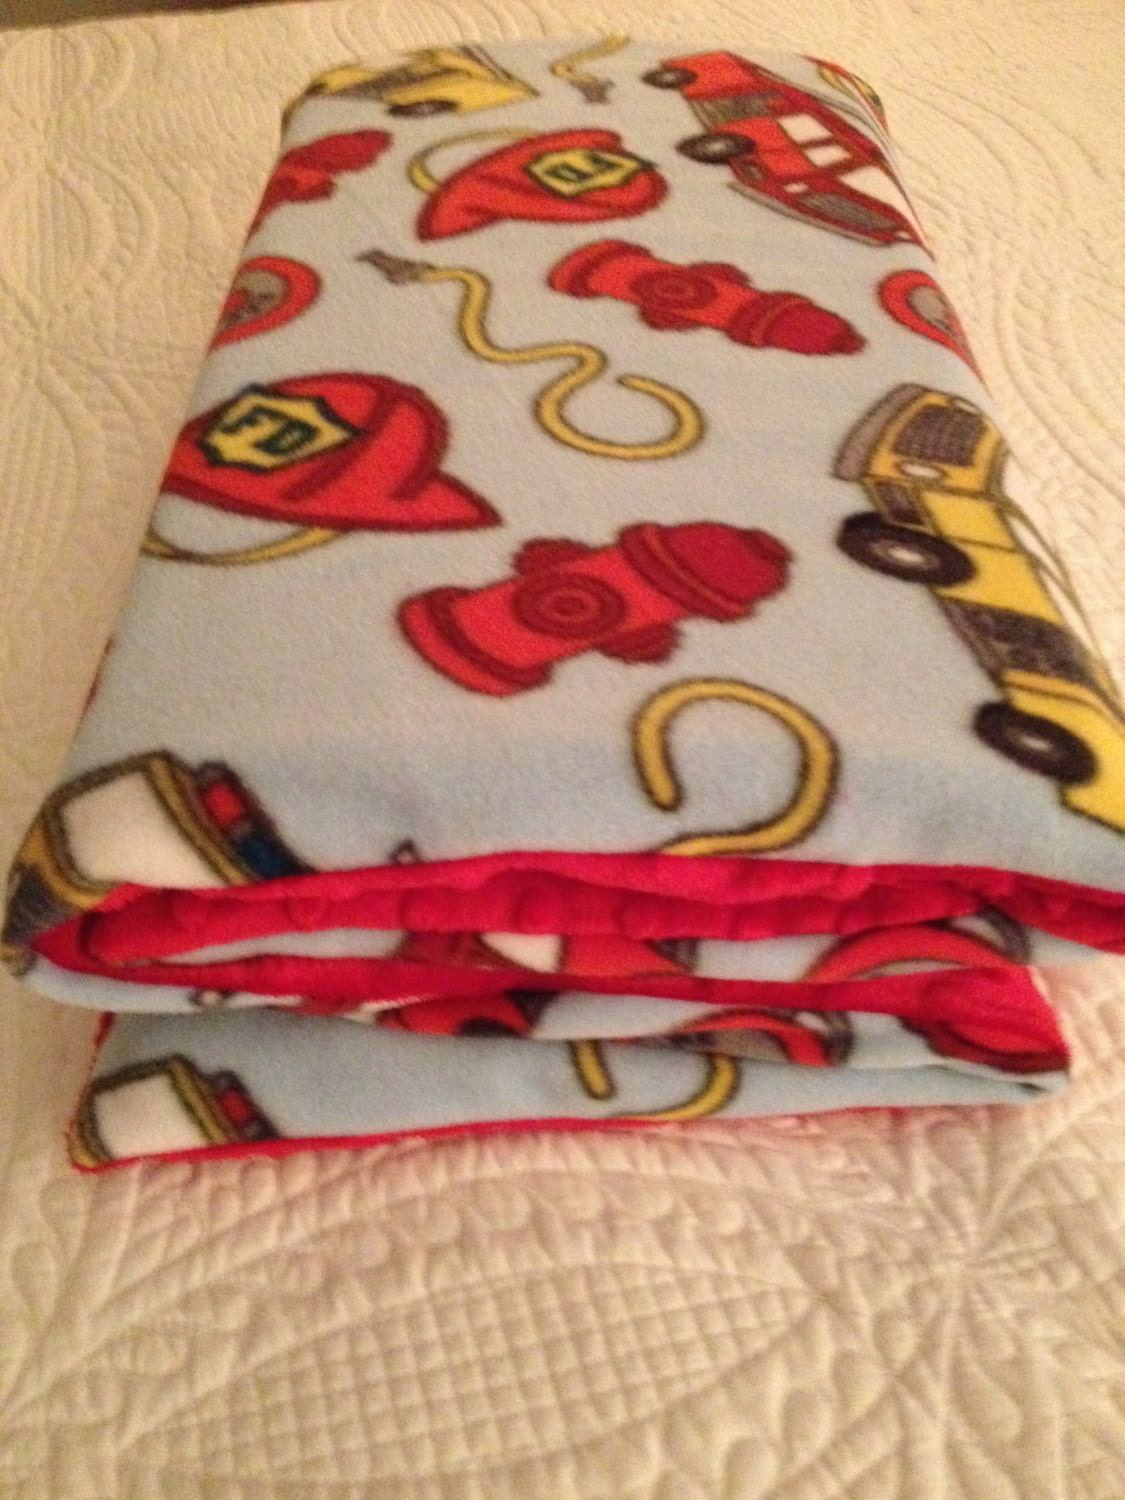 Boys Comfy Covers For 1 Thick Nap Mats